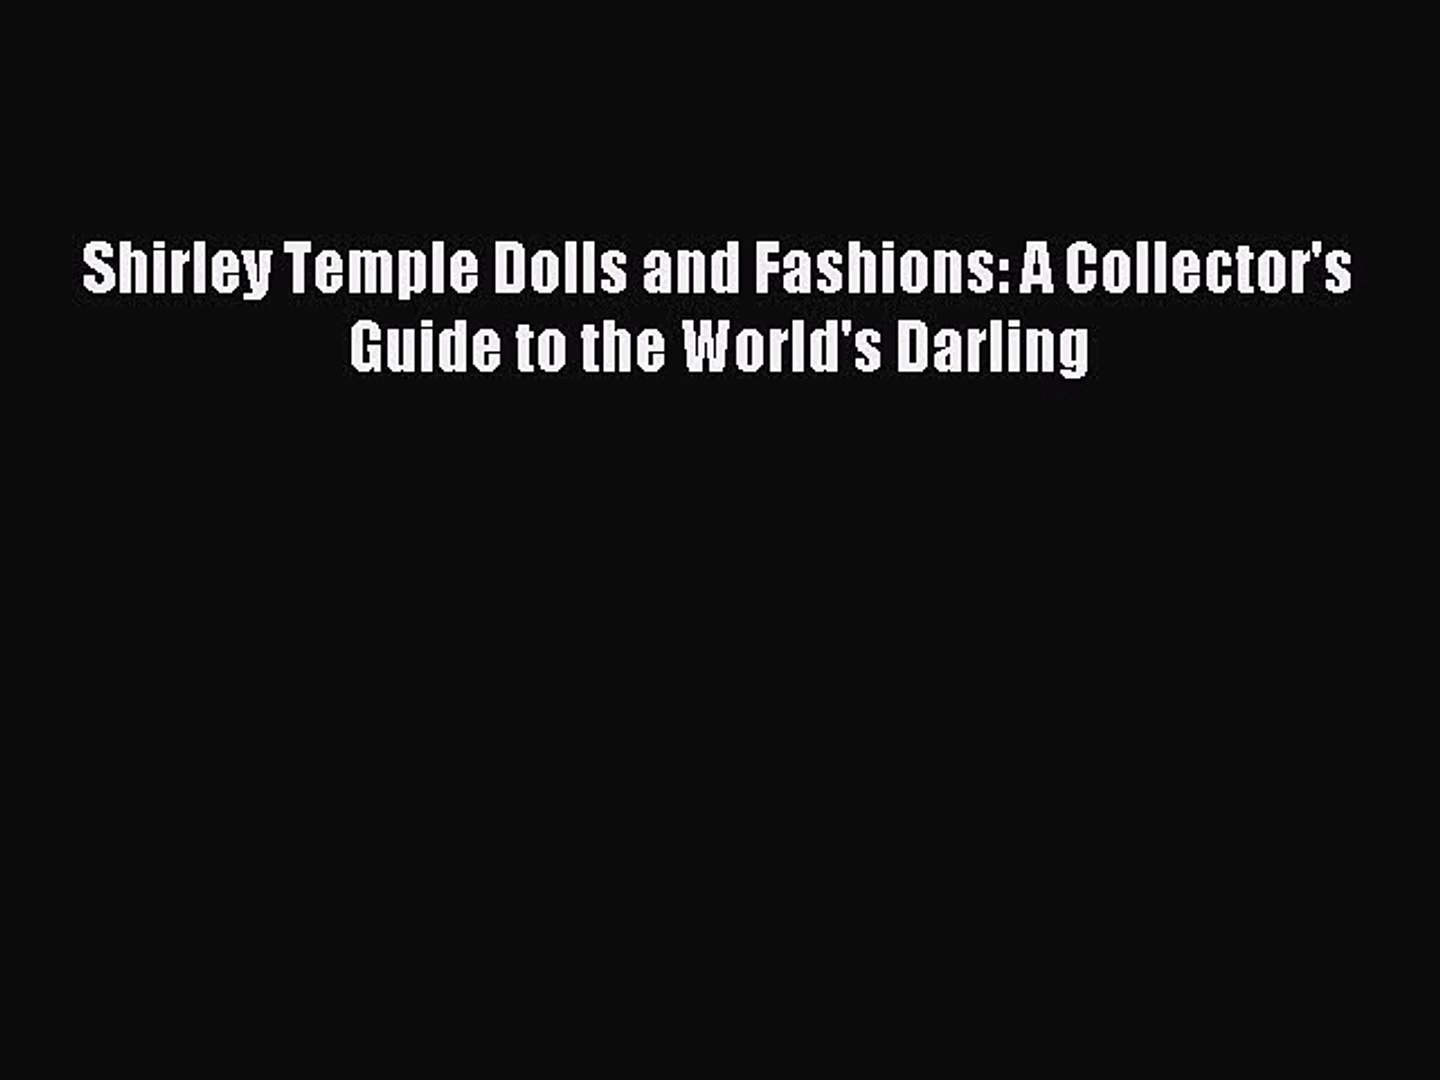 Read Shirley Temple Dolls and Fashions: A Collector's Guide to the World's Darling E-Book